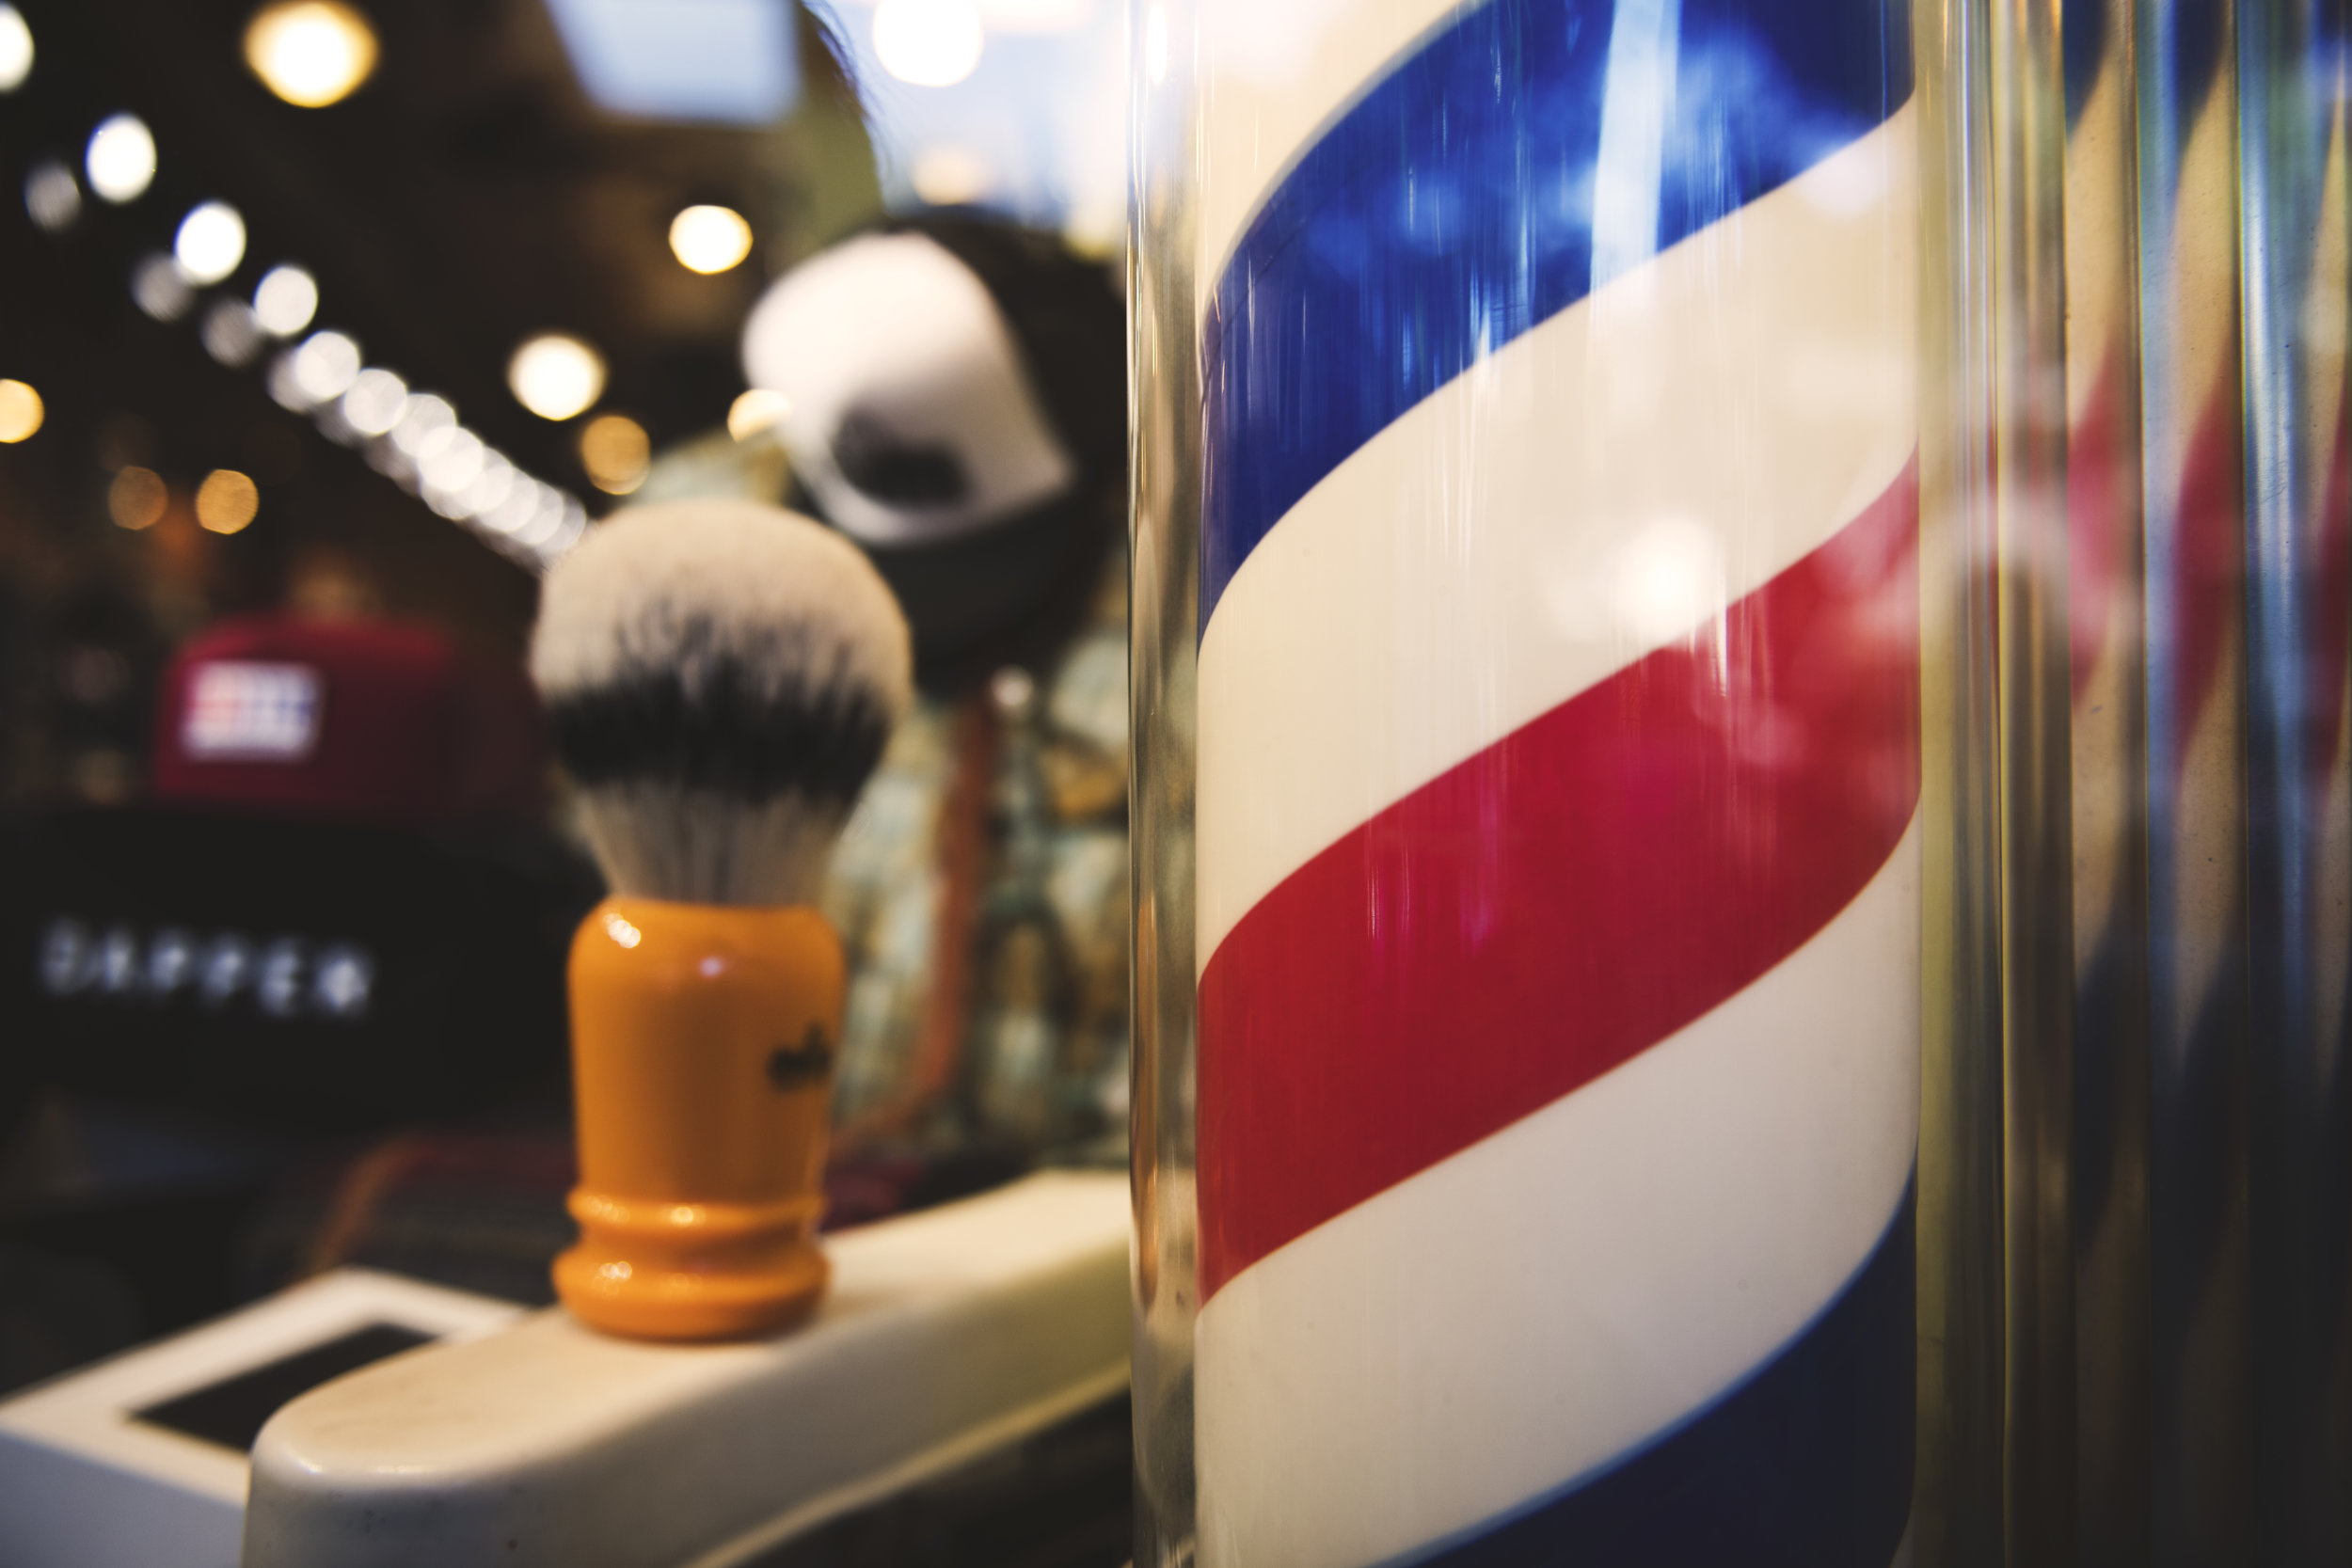 shave like a gentleman